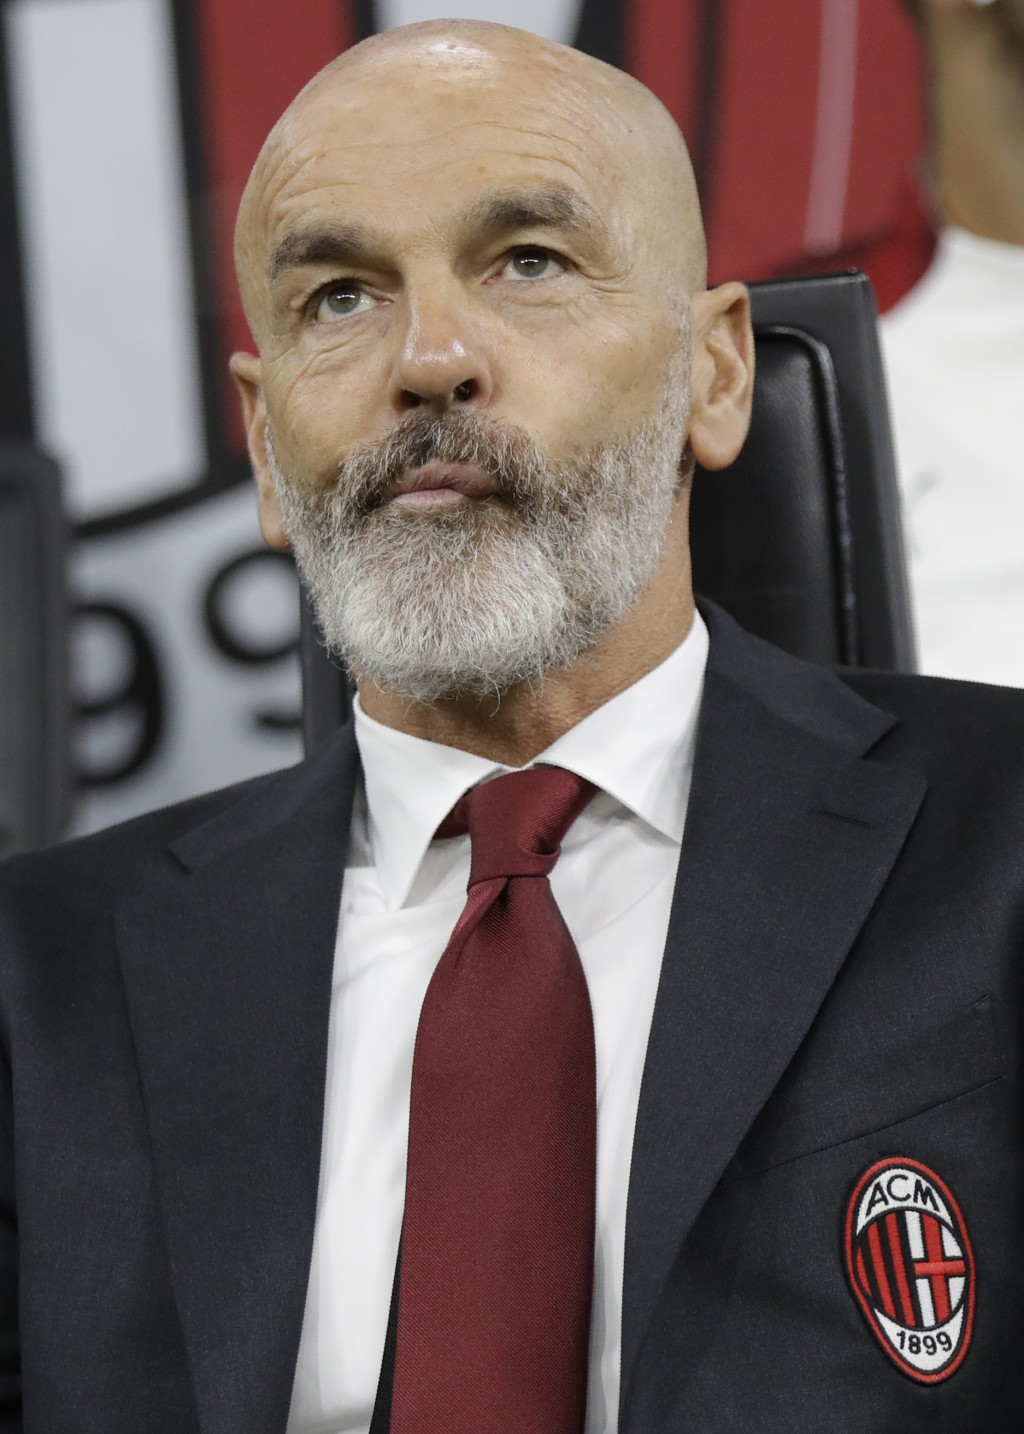 AC Milan's manager Stefano Pioli looks on at the start of Serie A soccer match between AC Milan and Lecce, at the San Siro stadium in Milan, Italy, Su...